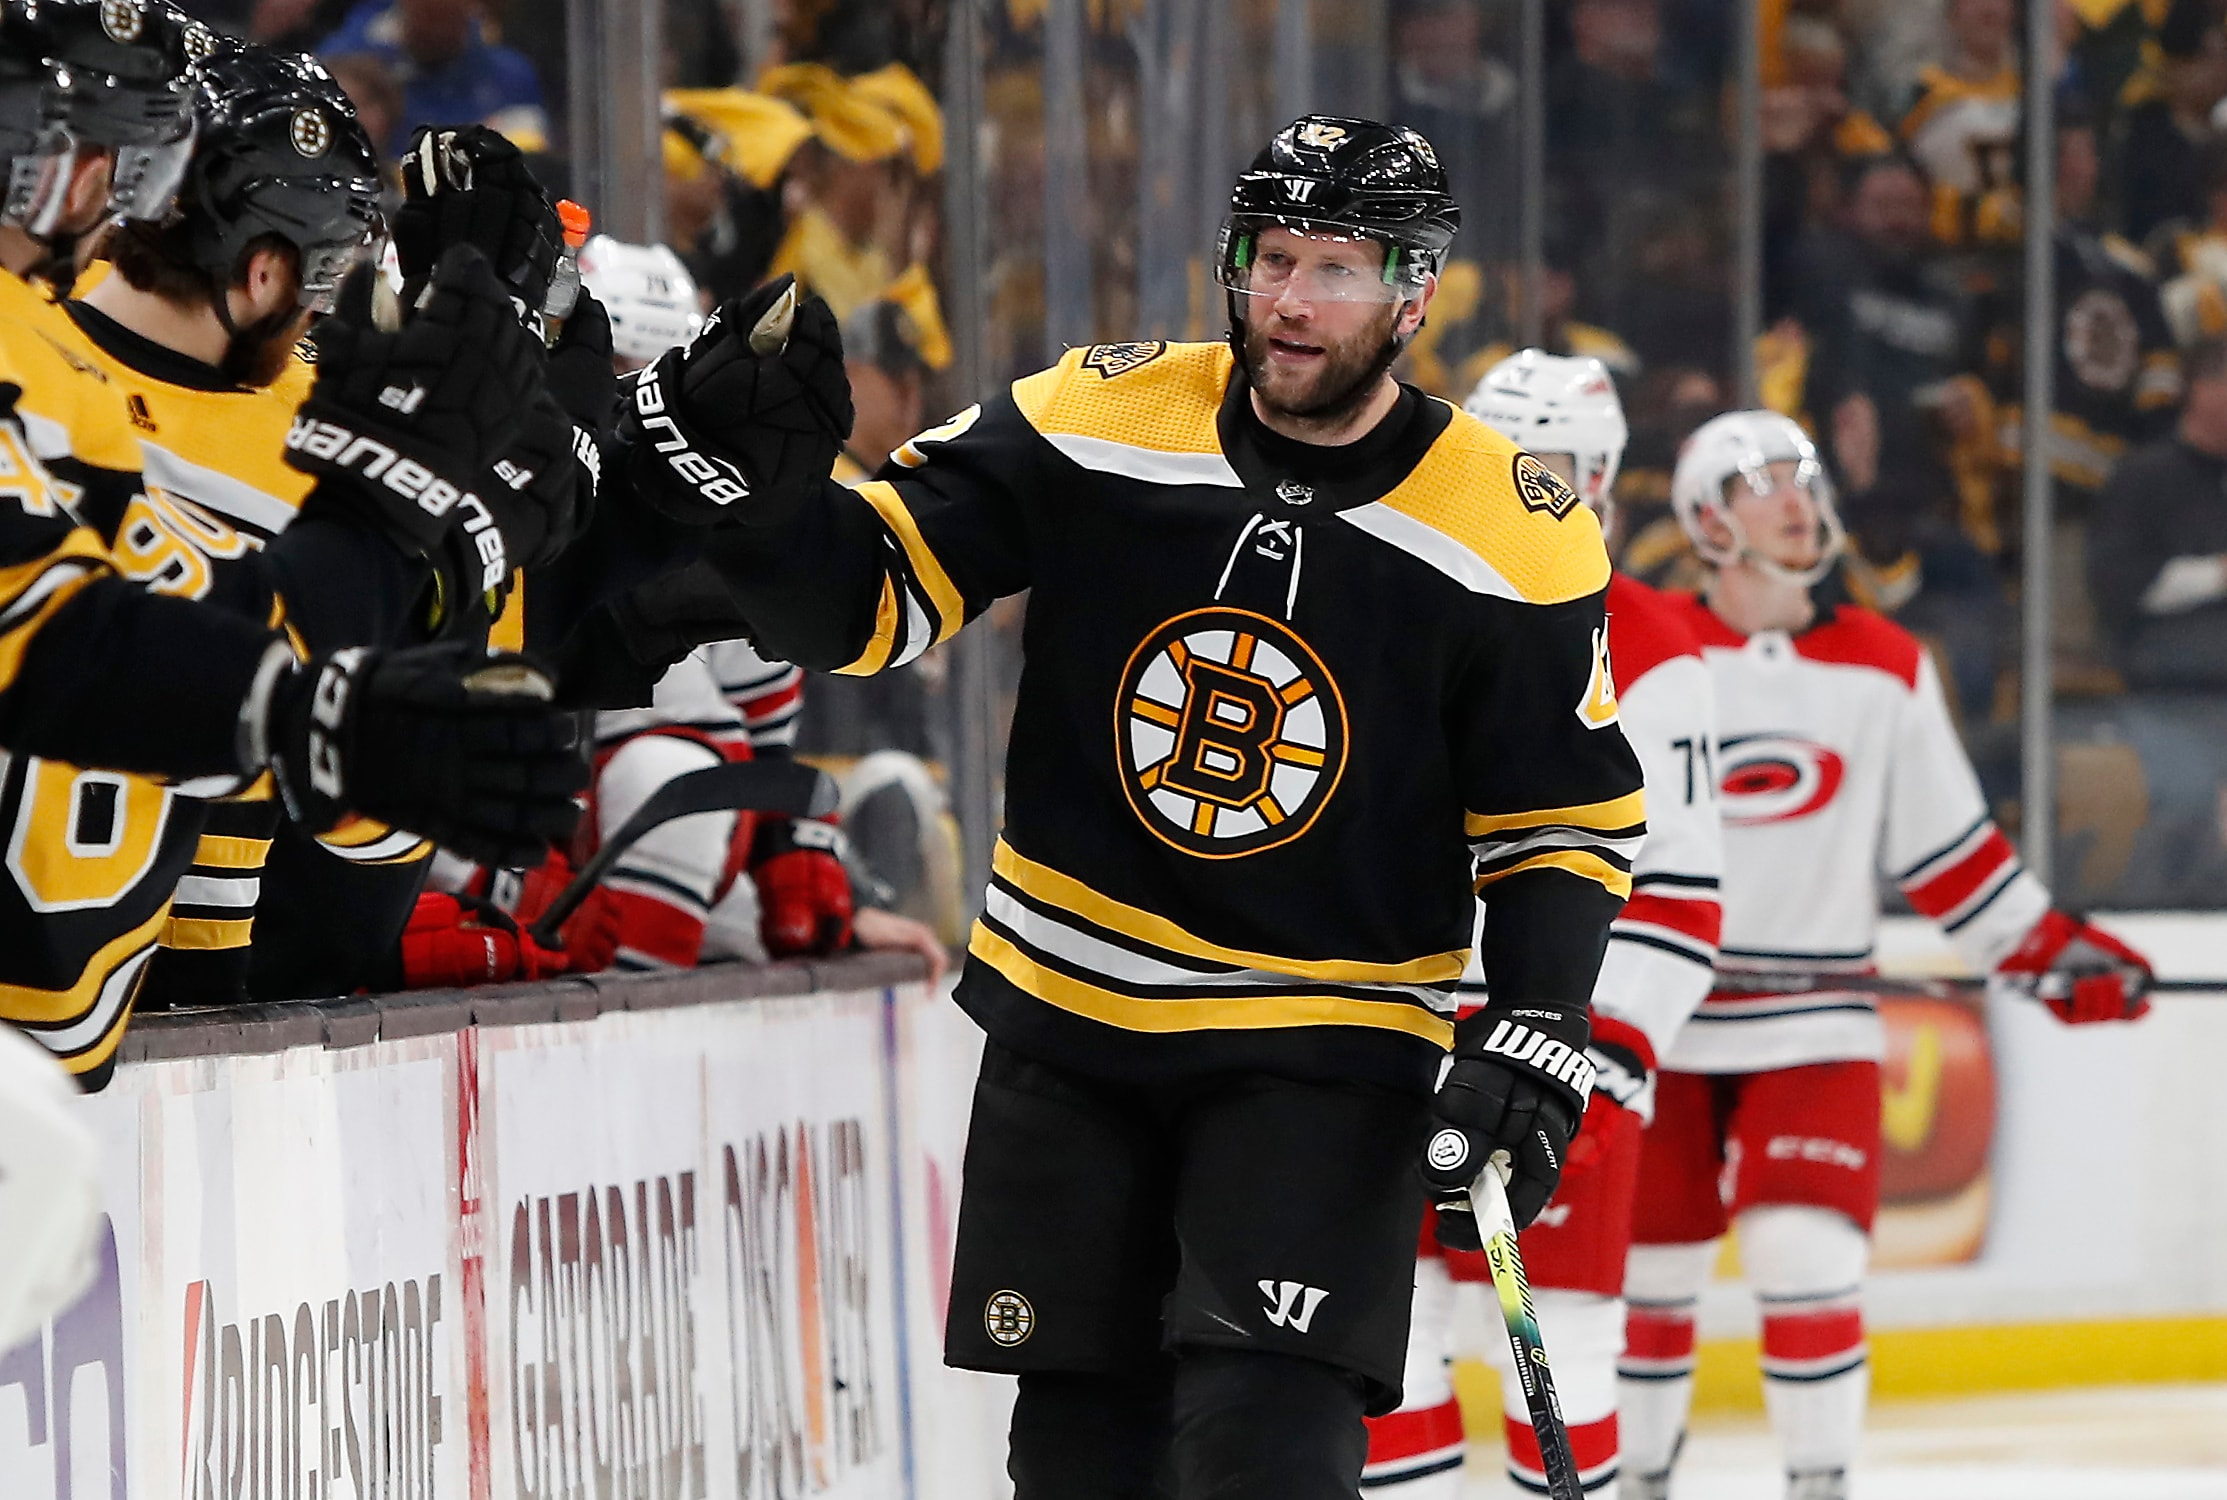 Bruins have to find way to get out from under the David Backes contract